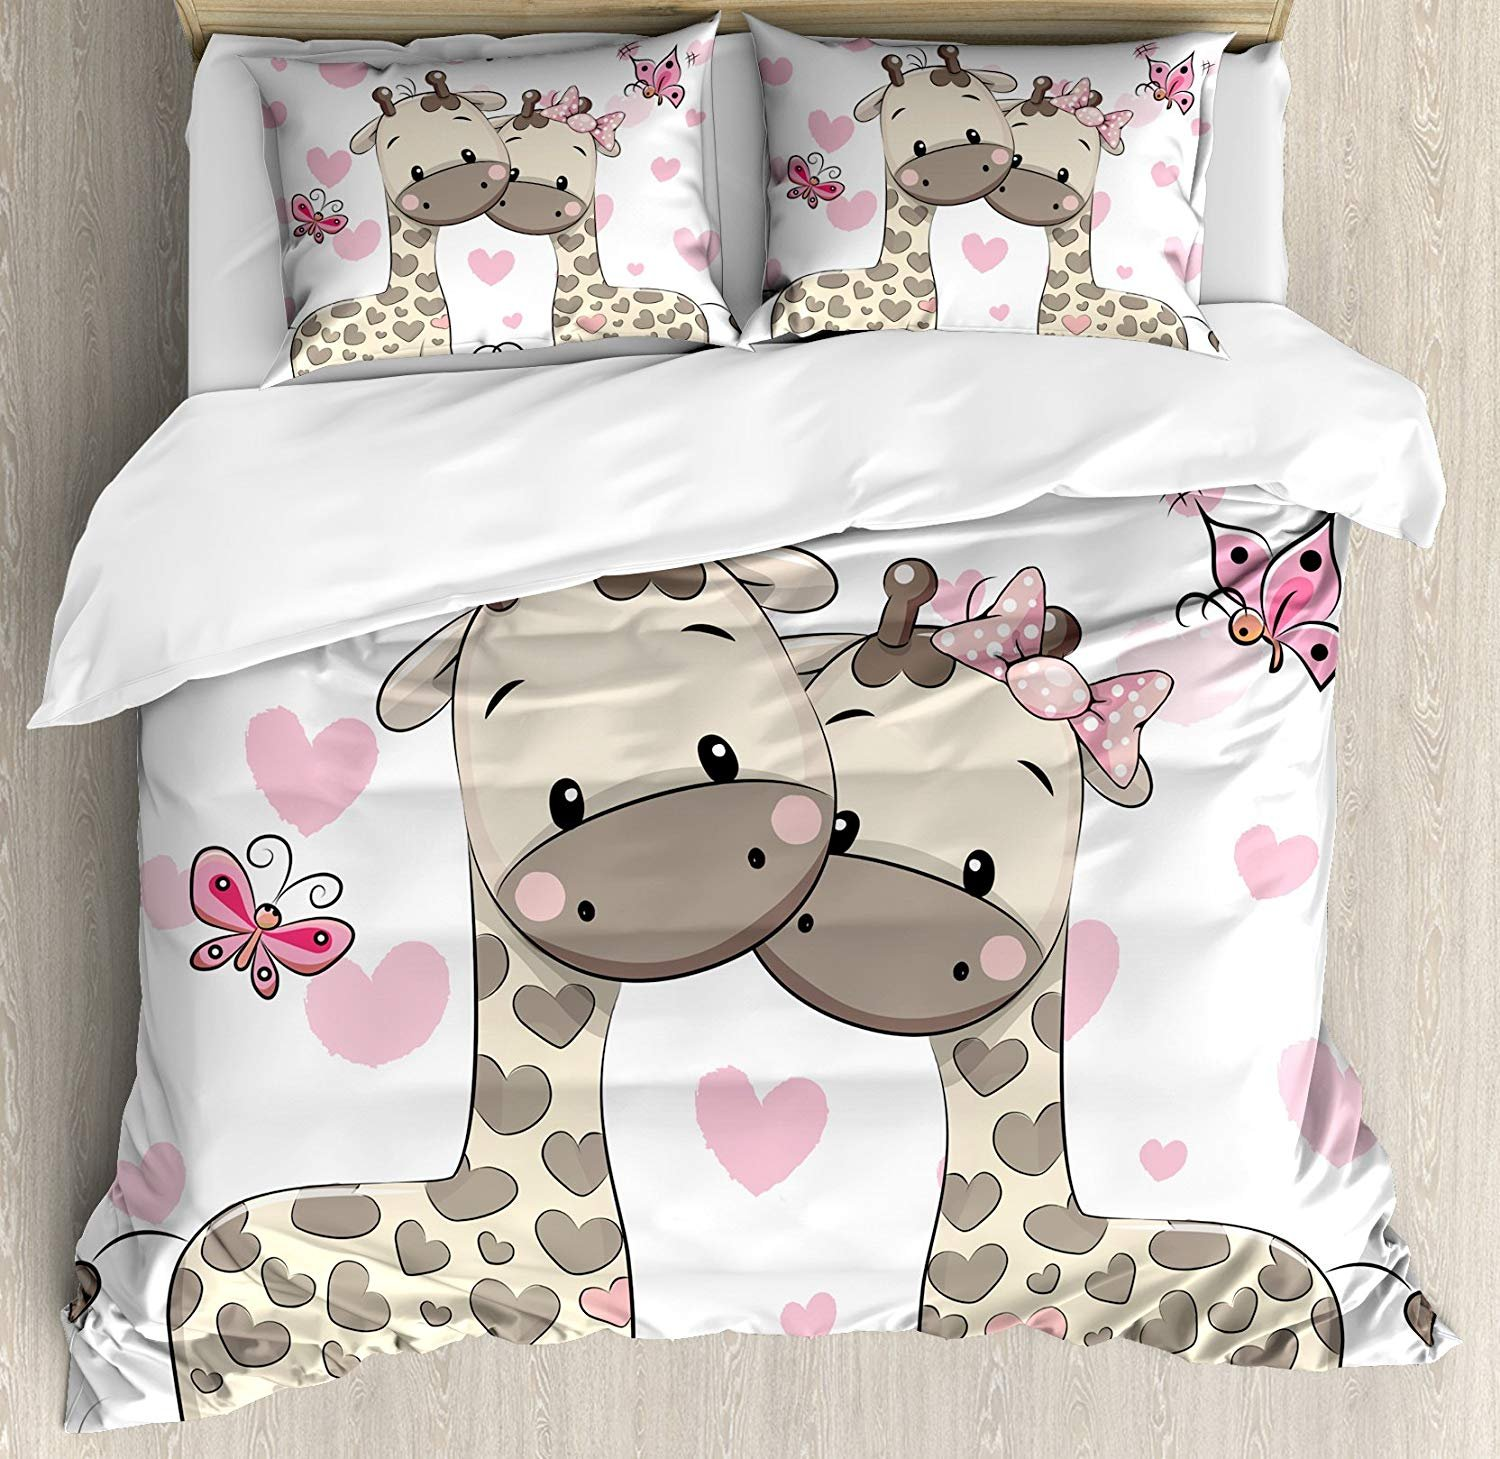 Twin XL Extra Long Bedding Set, Kids Decor Duvet Cover Set, Cute Giraffes in Pure Valentine's Love with Butterflies and Hearts Bows Art, Cosy House Collection 4 Piece Bedding Sets